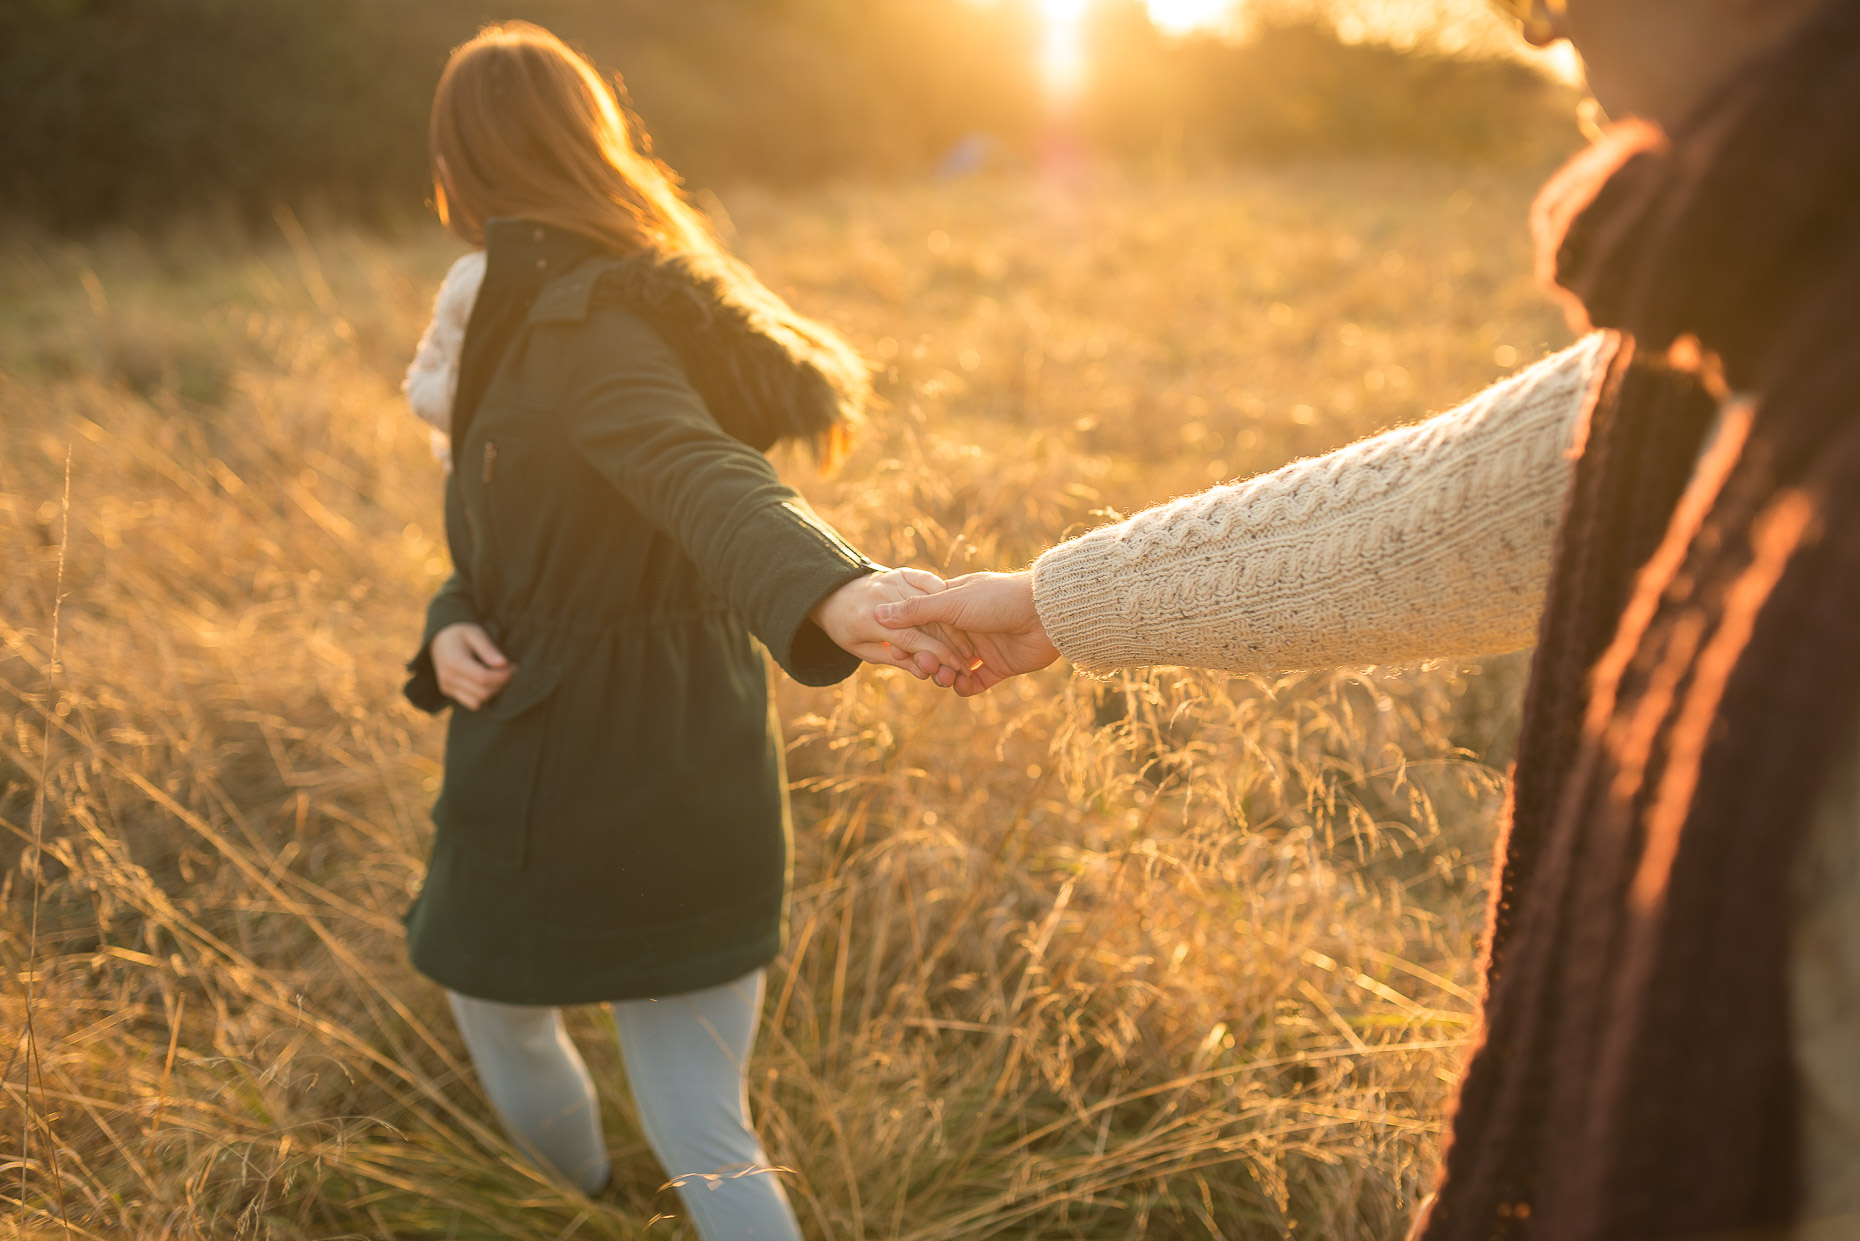 autumn-couple-hiking-together-sunset-long-grass-romance-leading-walk-epping-forest-london-uk-20